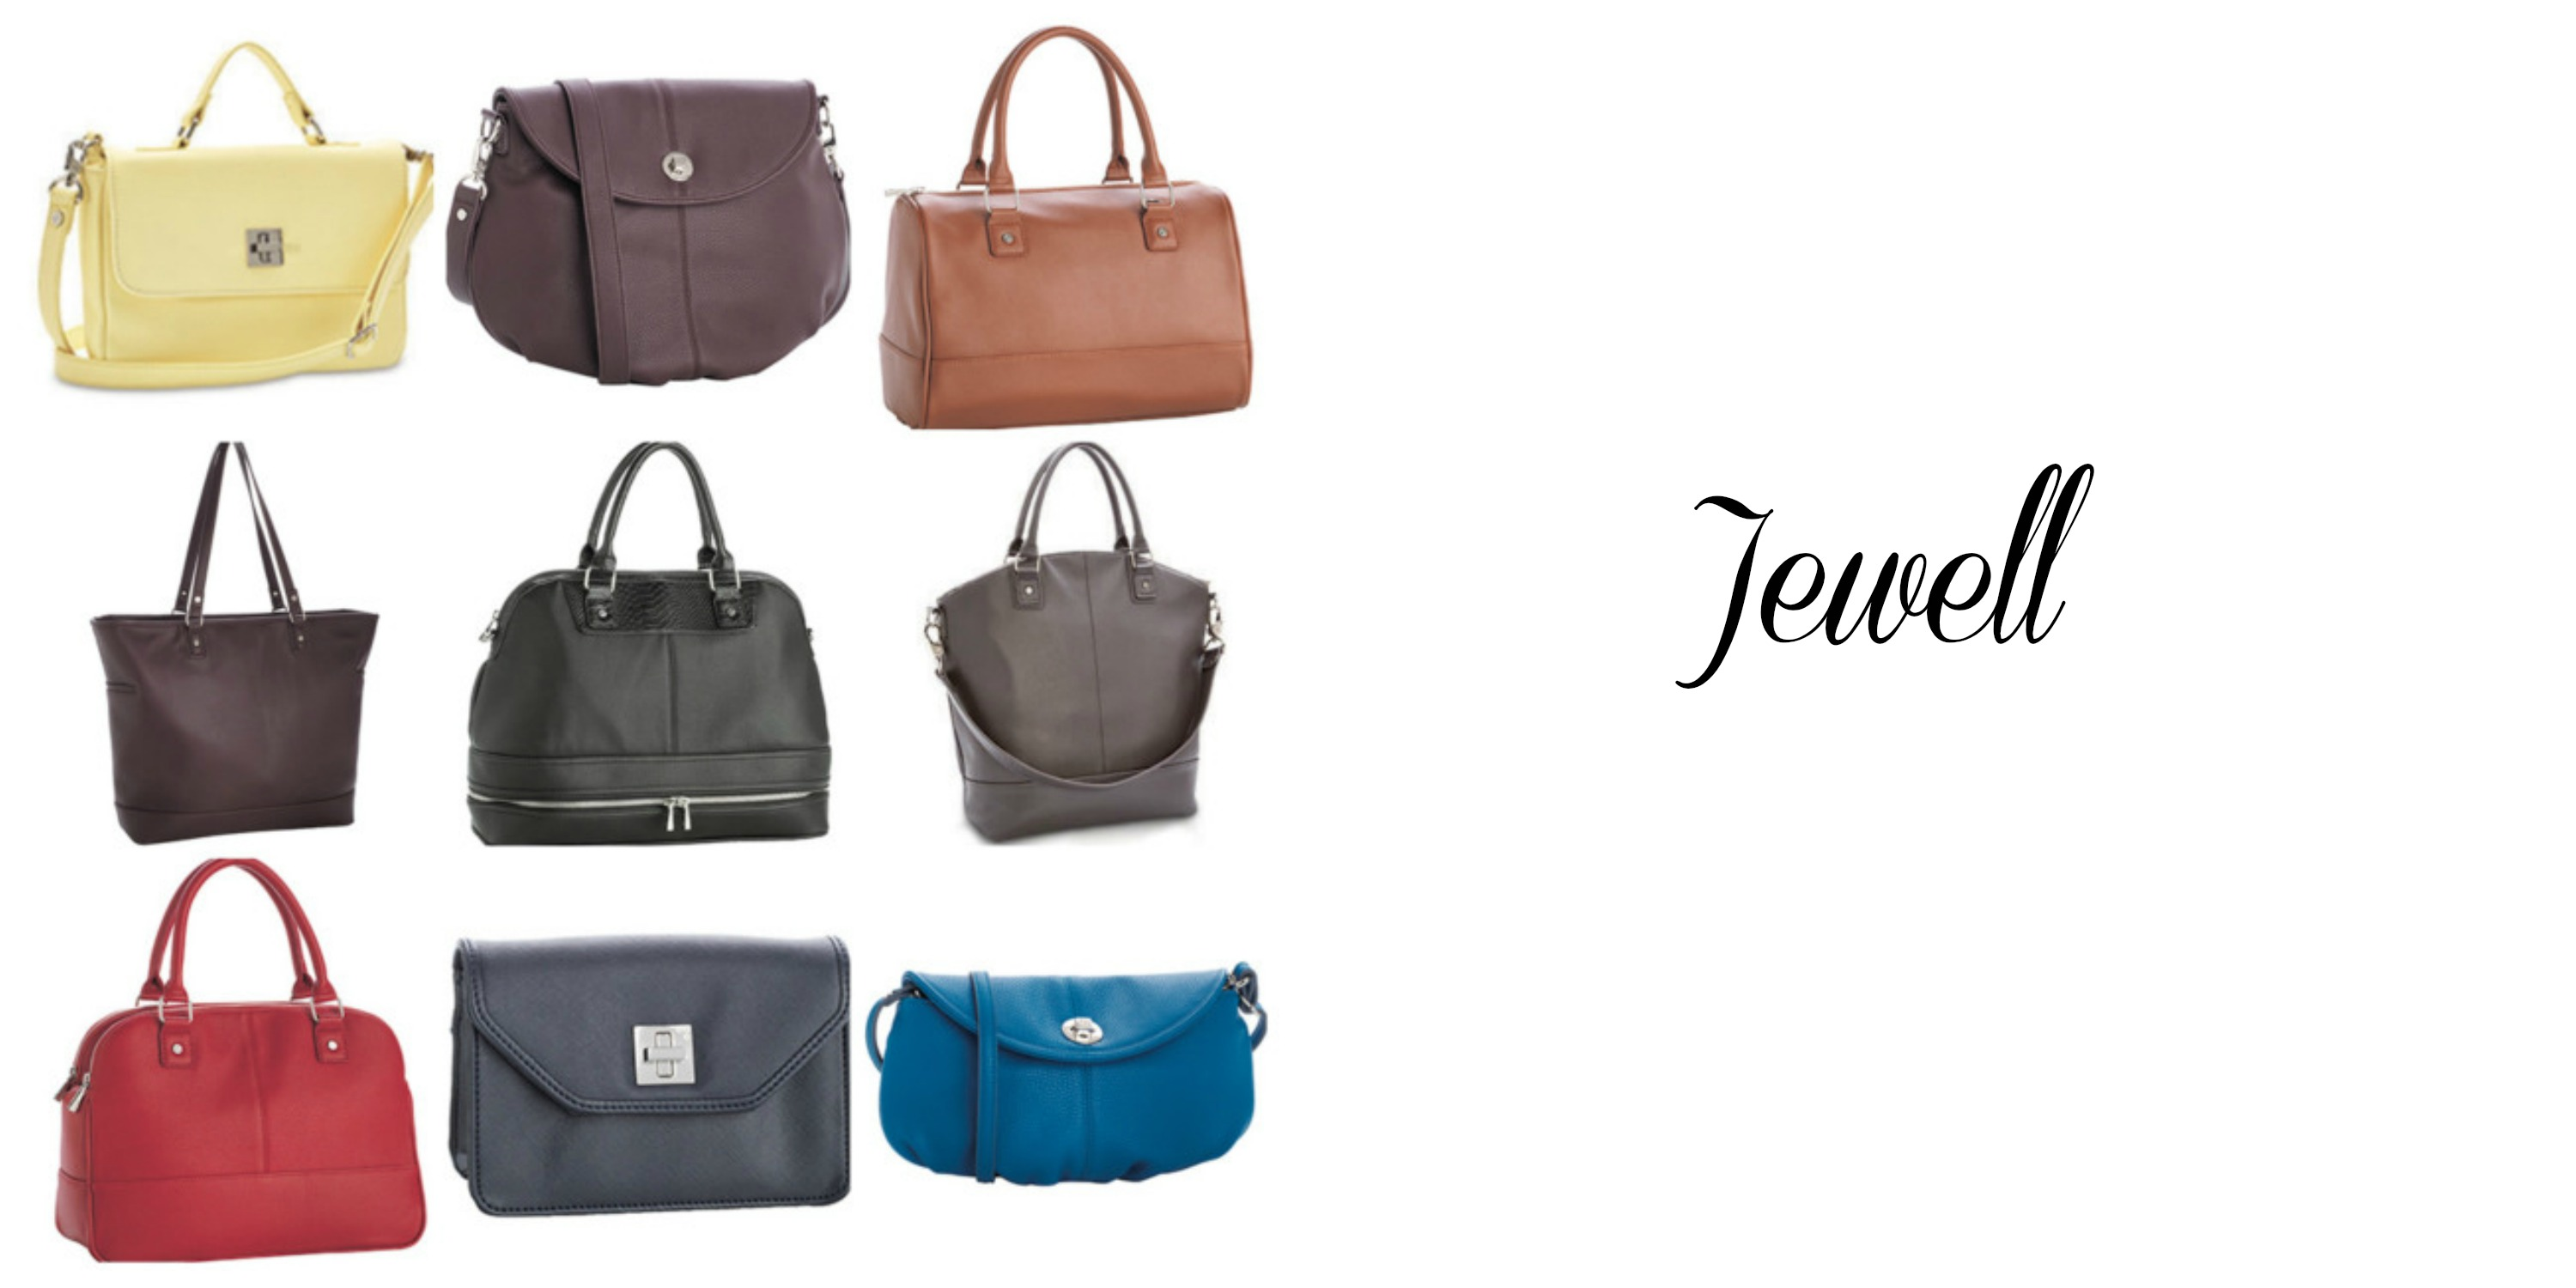 jewell_handbags_girl_about_columbus